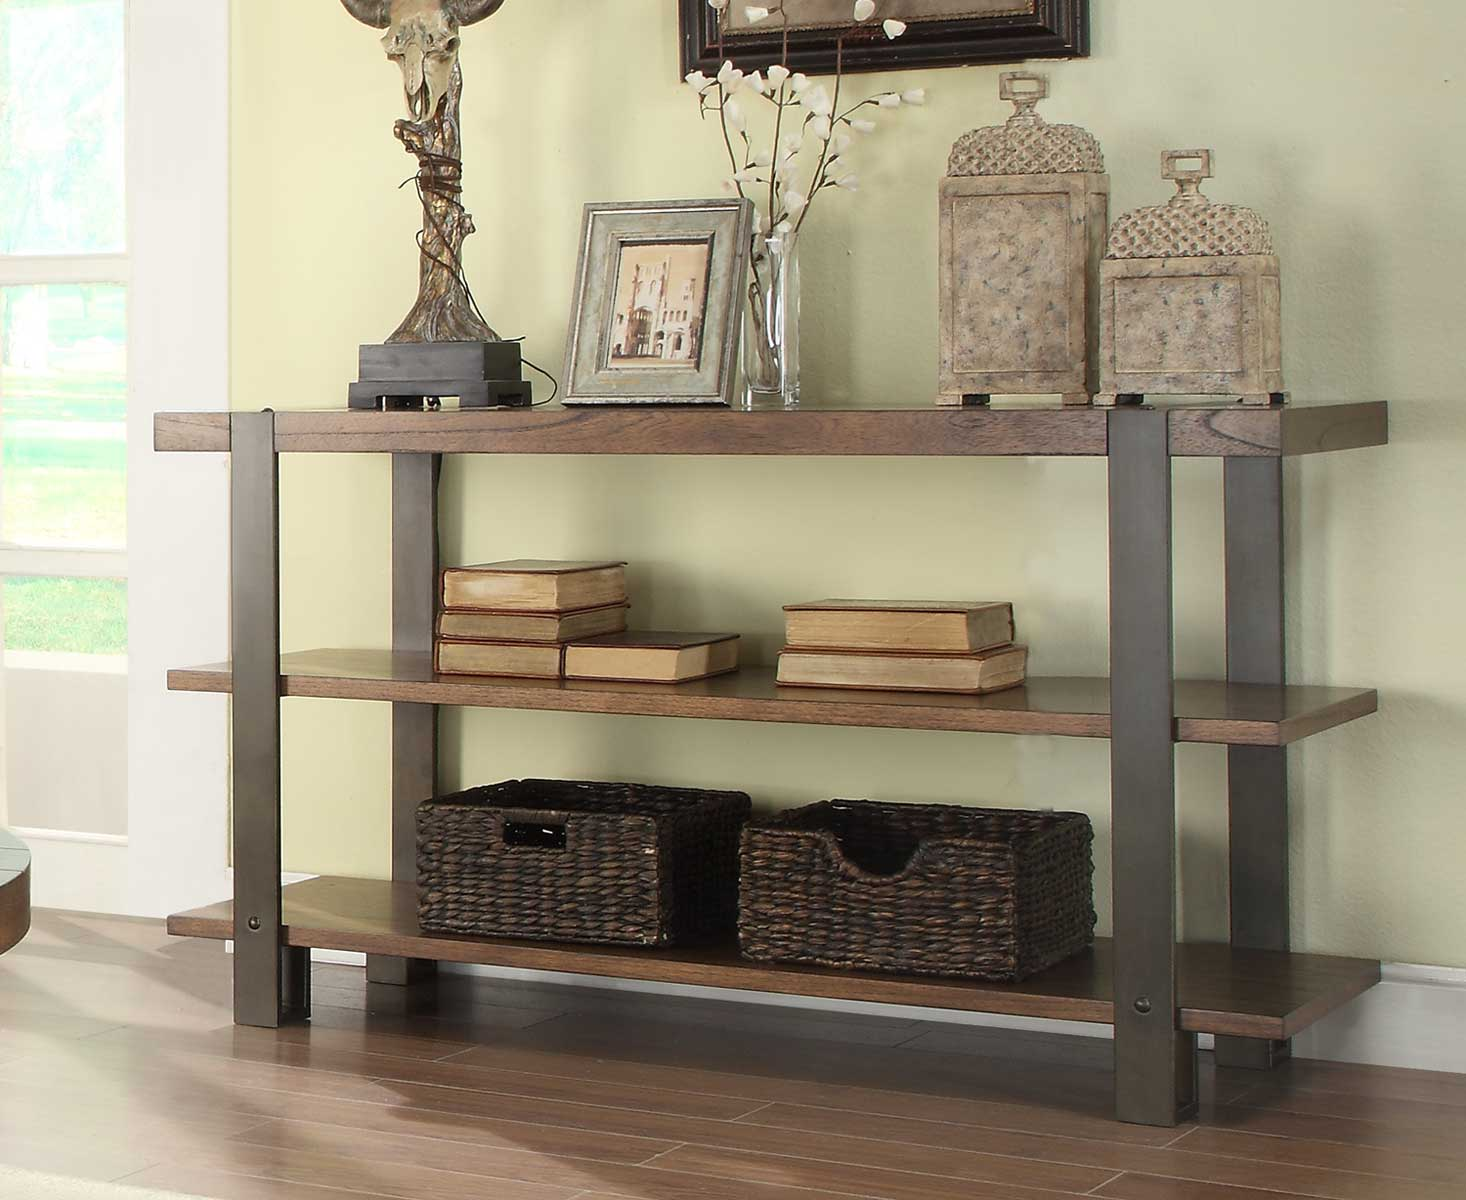 Homelegance Northwood Sofa Table - Natural Brown